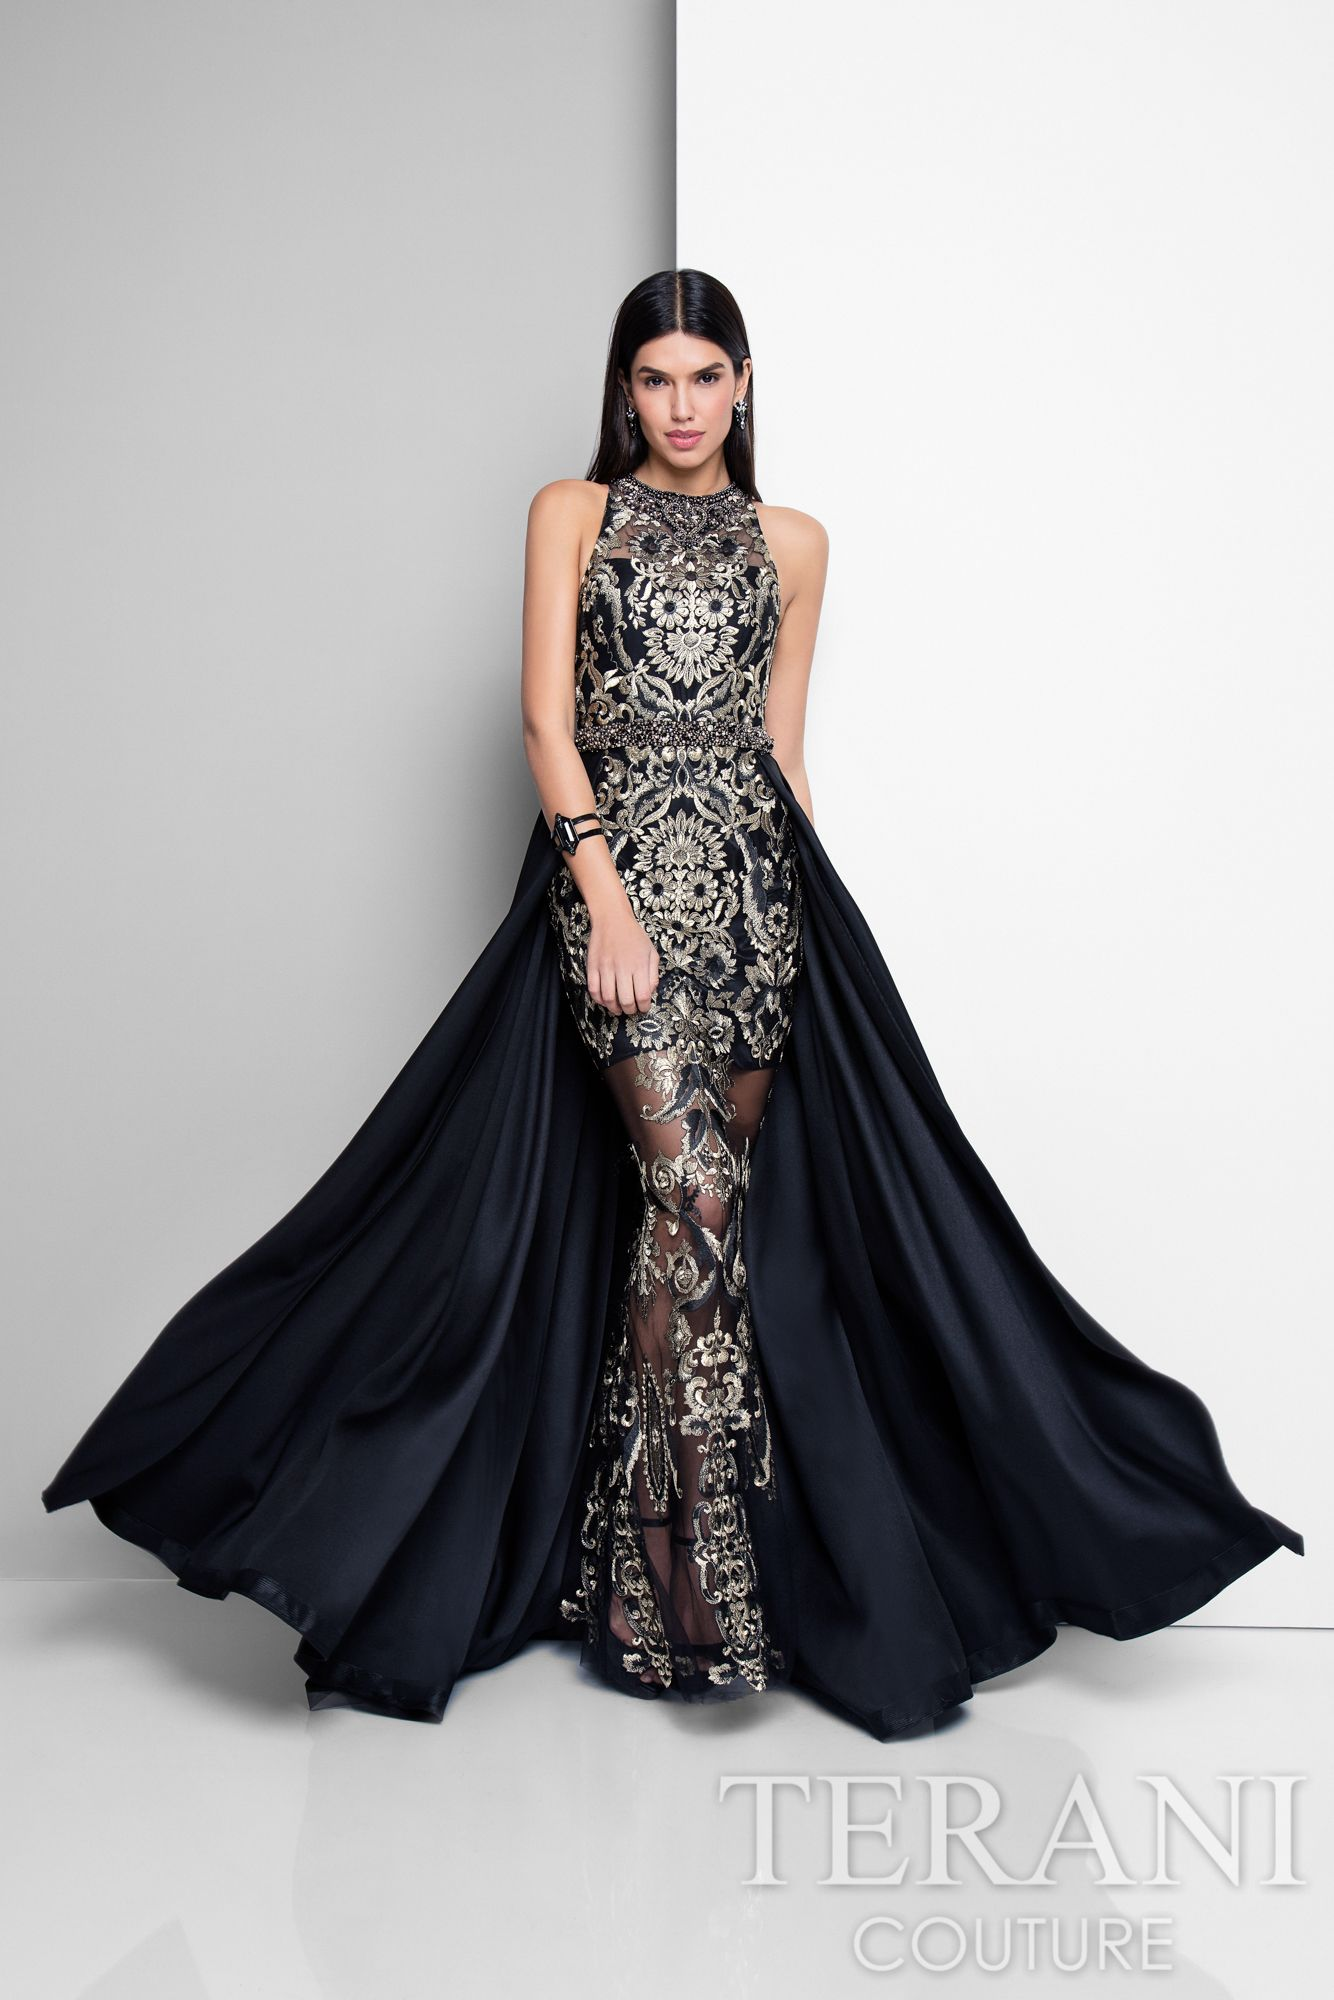 637004c0adaf Stunning black&gold two-tone metallic embroidery is artfully placed on this  halter column evening wear gown, complemented by a dramatic pleated skirt  ...